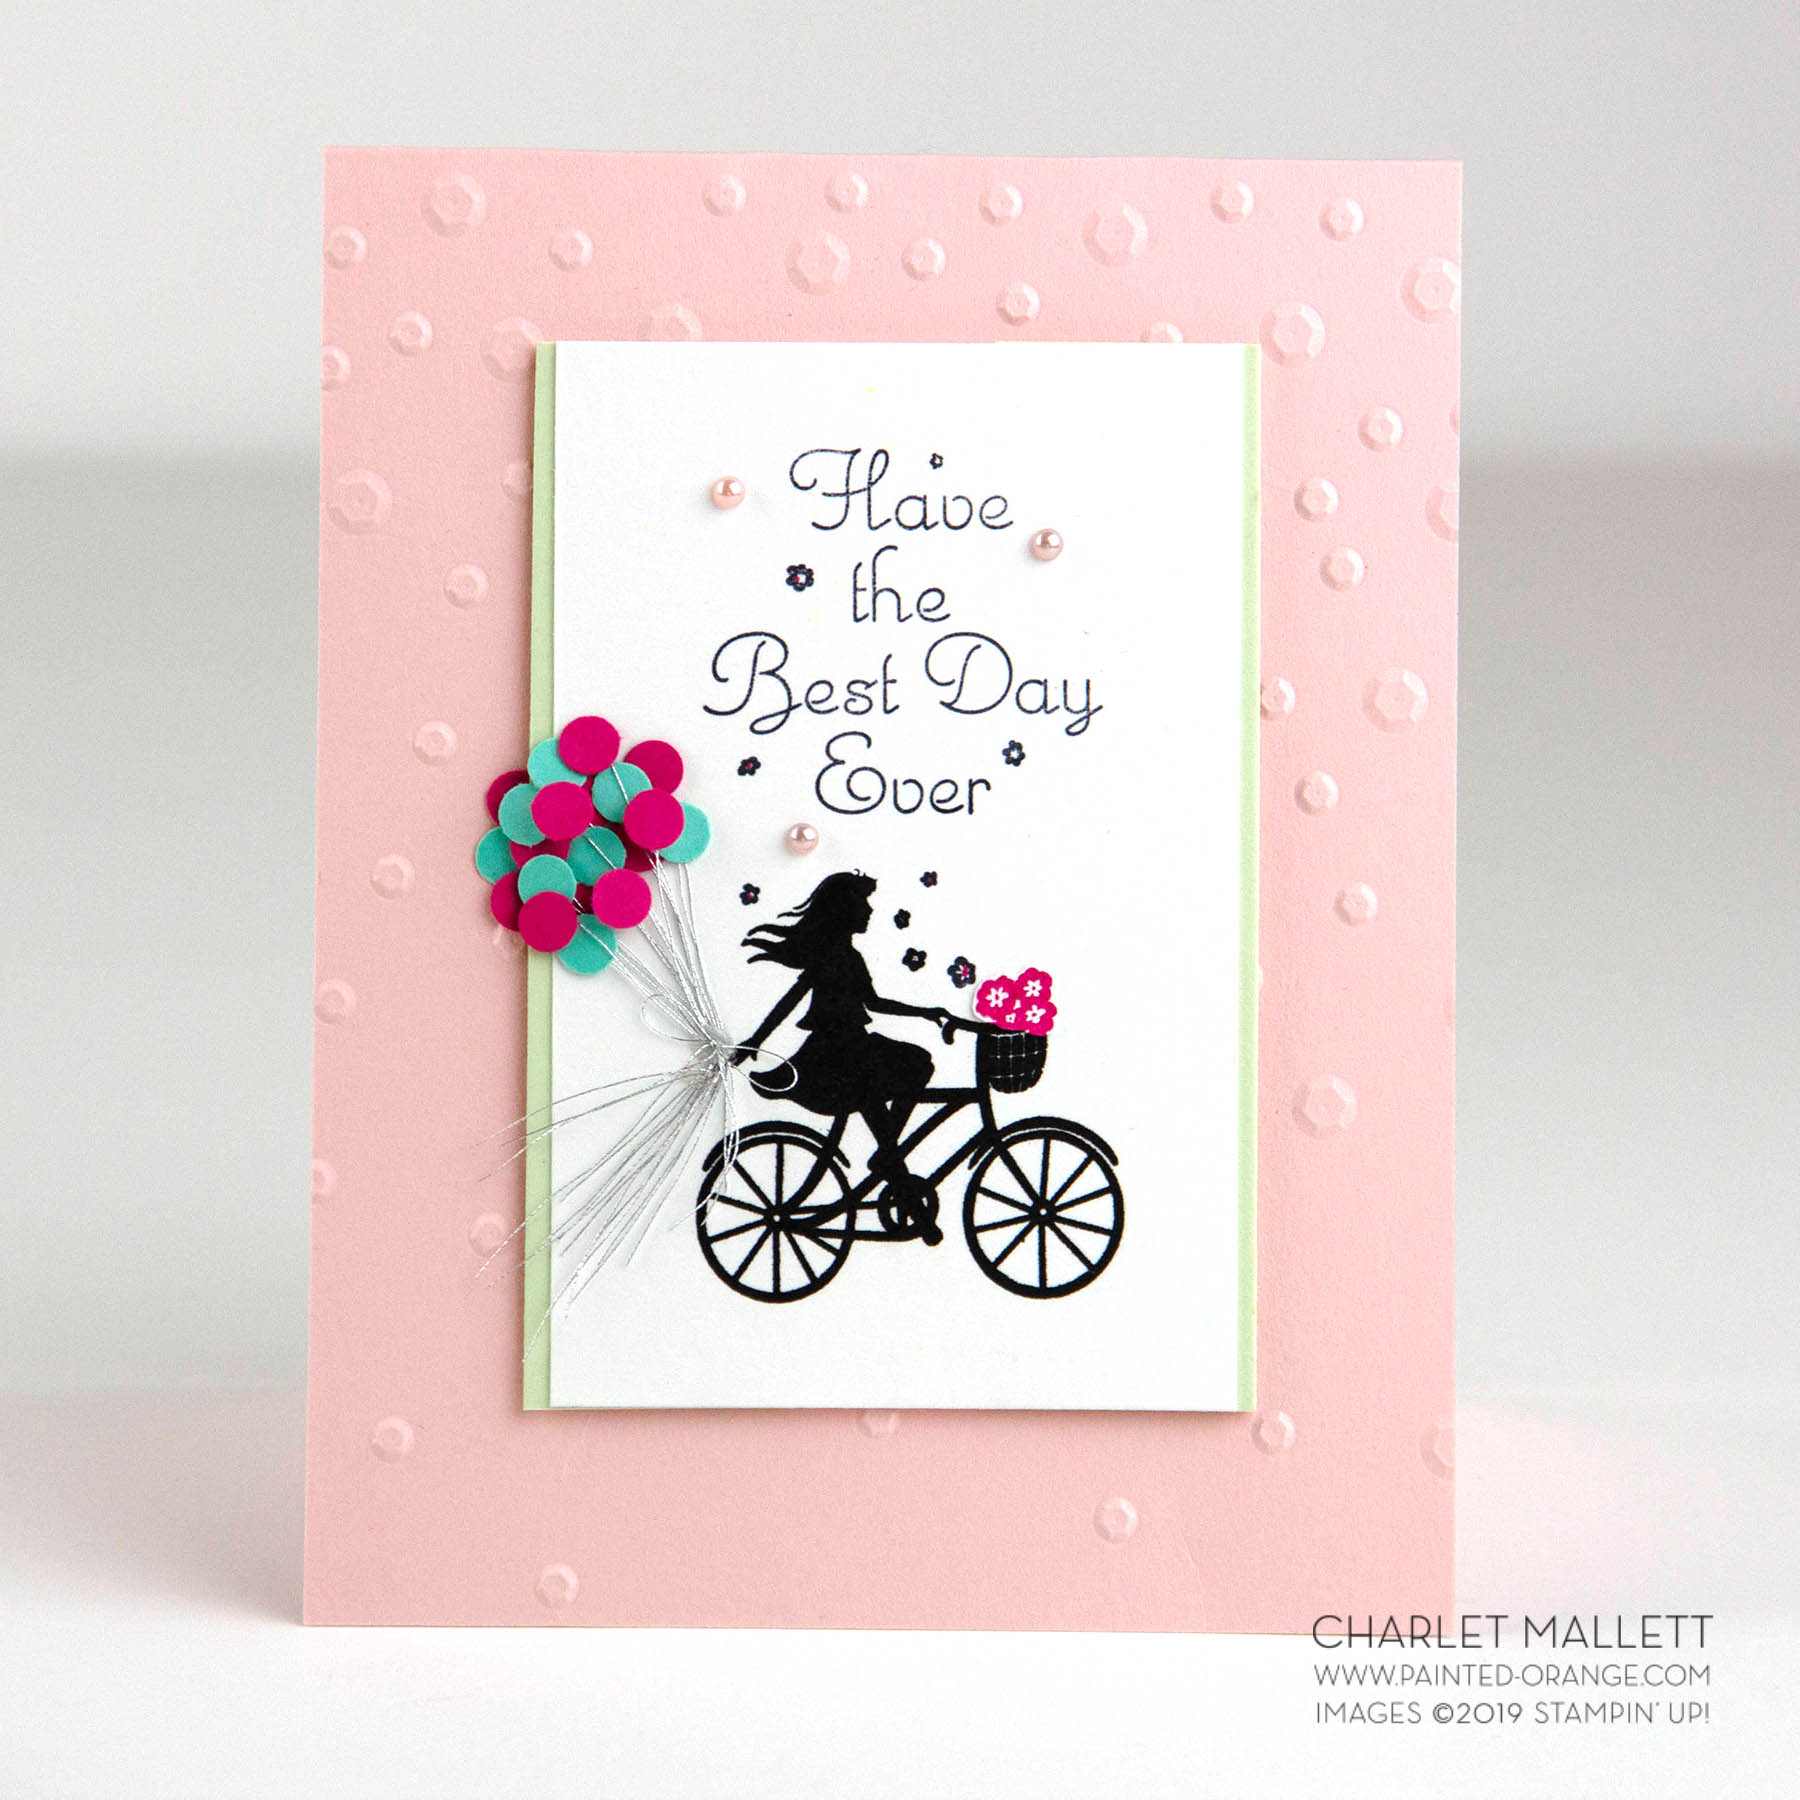 One for All - Girl with Balloons card. Charlet Mallett, Stampin' Up!